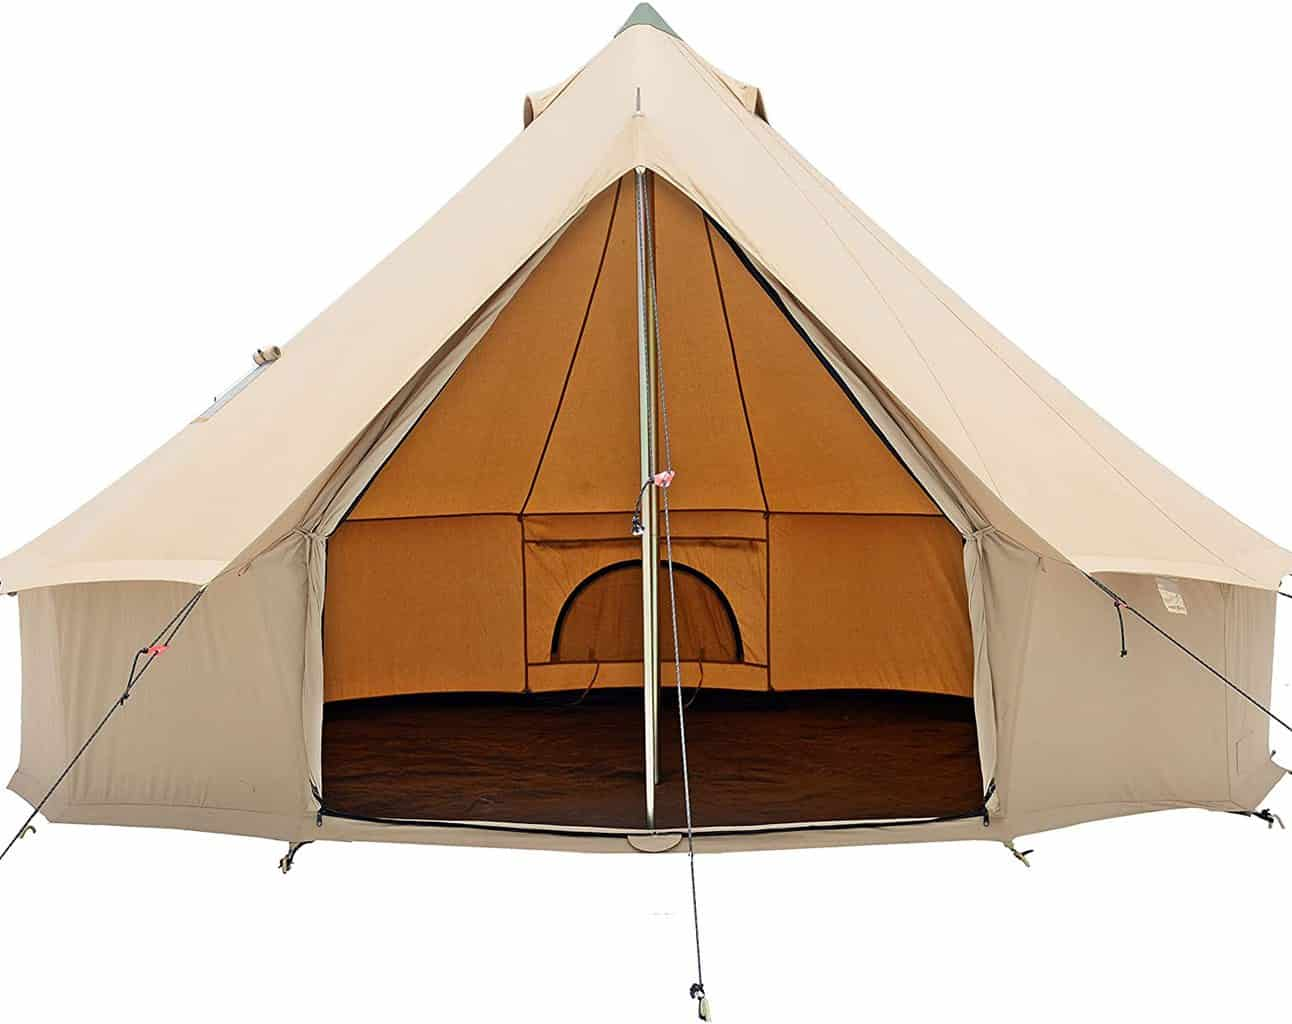 An empty glamping tent made by White Duck